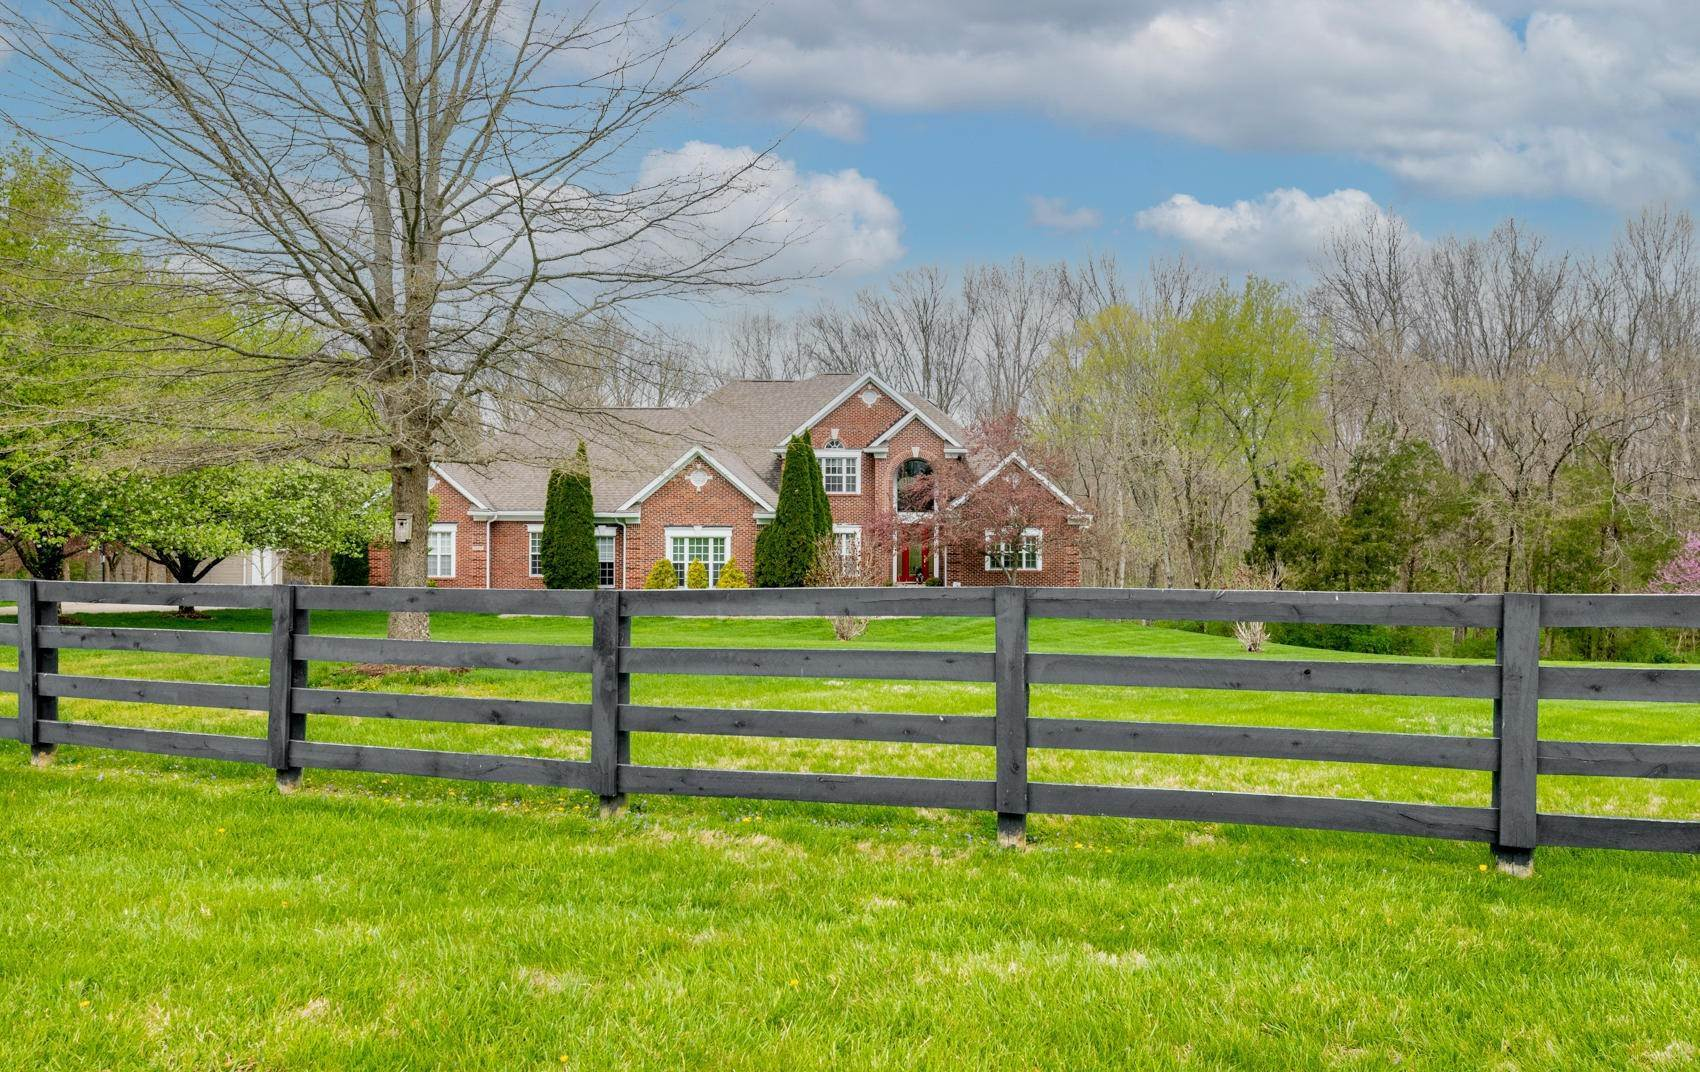 Single Family Homes for Sale at 16401 Crooked Lane Fisherville, Kentucky 40023 United States